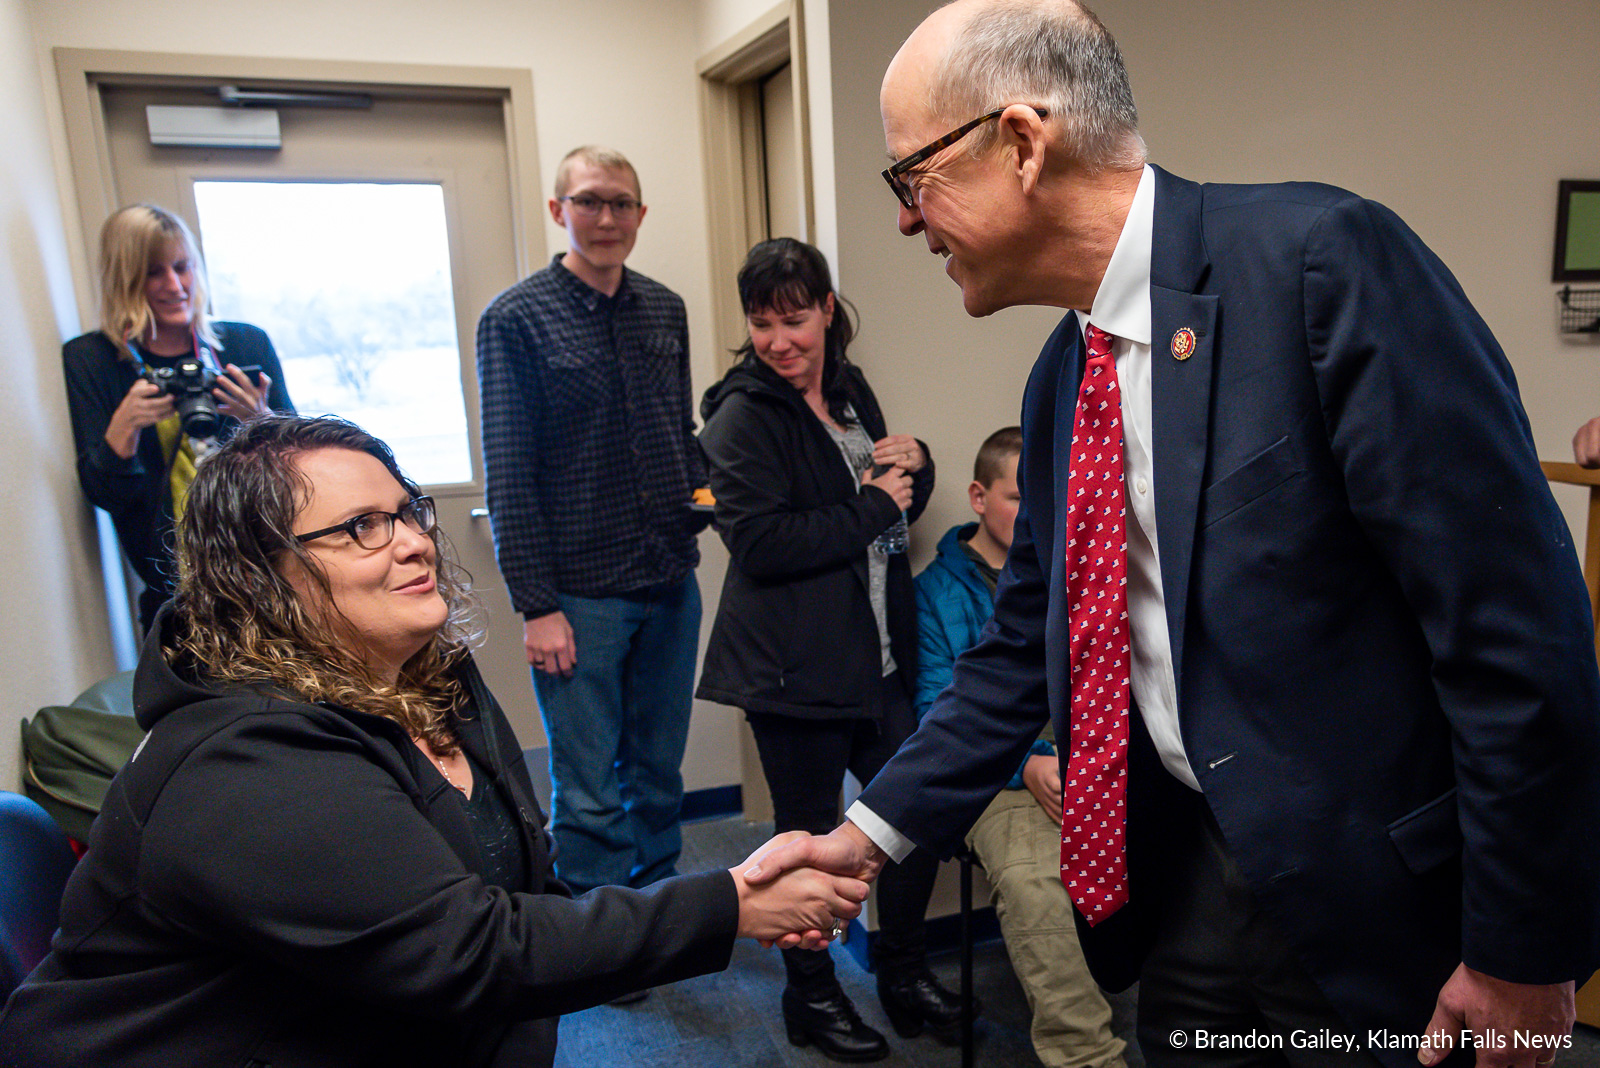 Congressman Walden visiting with a parent at the ribbon cutting of the Klamath County School Based Health Center. March 9, 2019. (Brandon Gailey / Klamath Falls News)